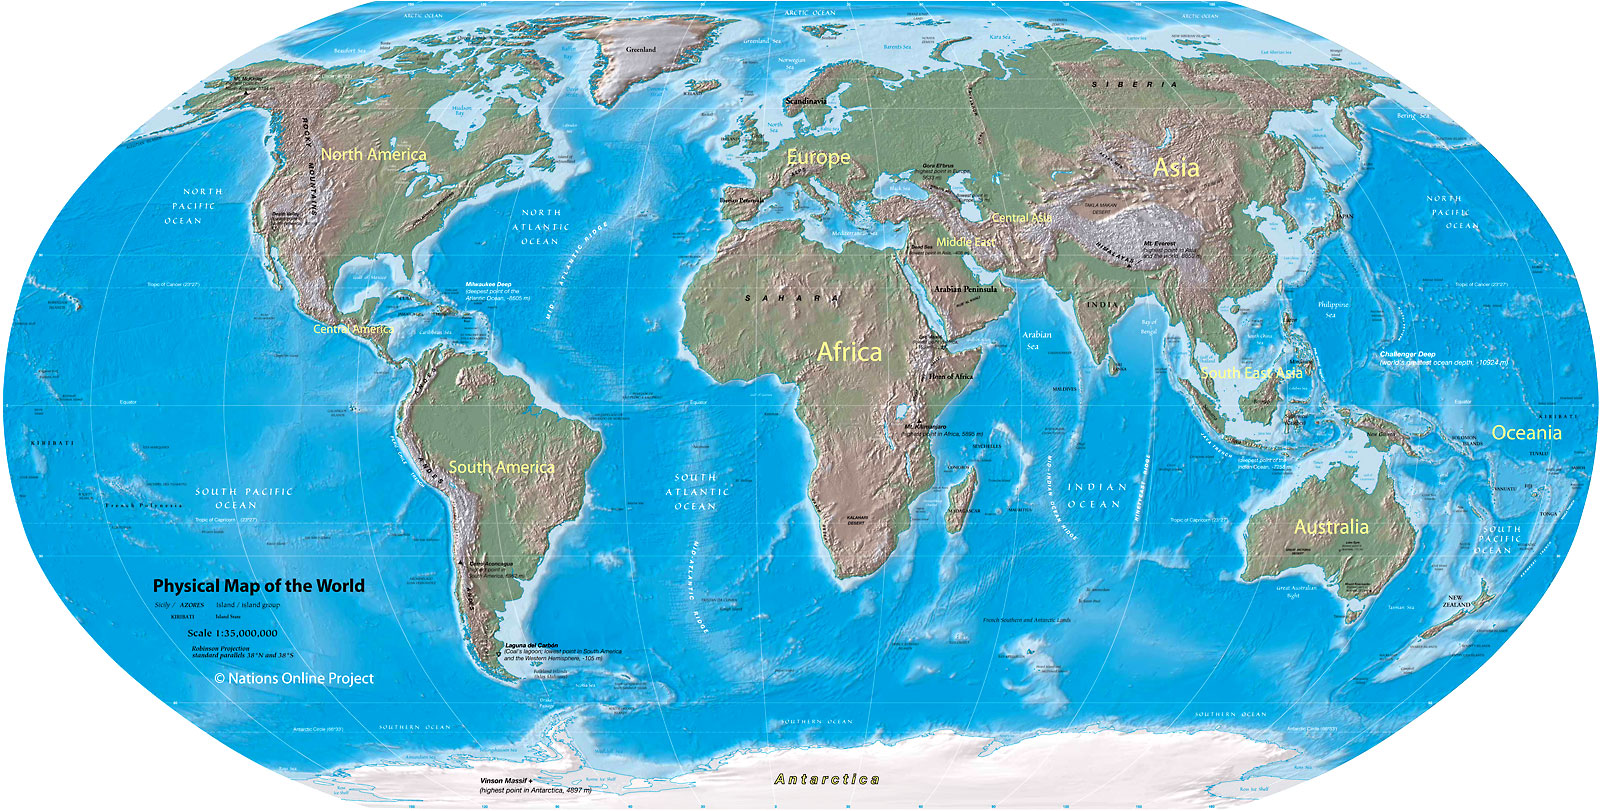 World map physical map of the world nations online project physical map of the world 1600px publicscrutiny Images